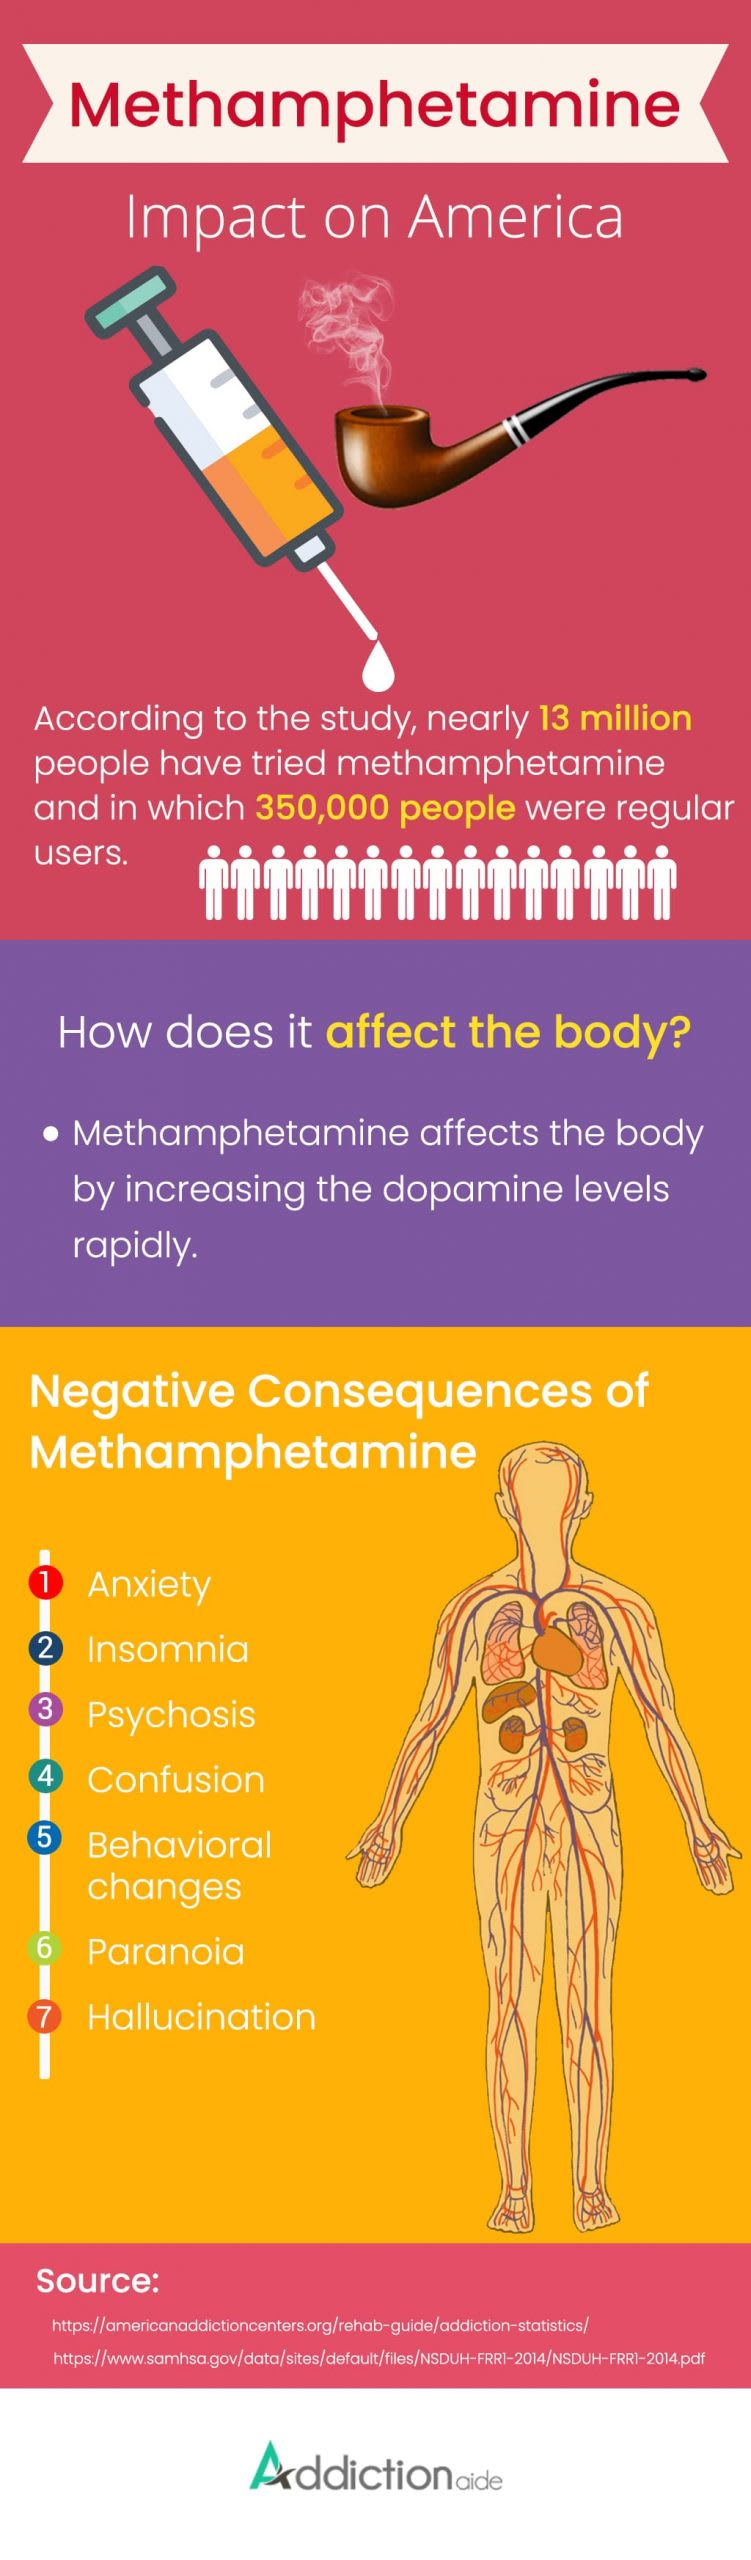 7 Negative Consequences Of Methamphetamine